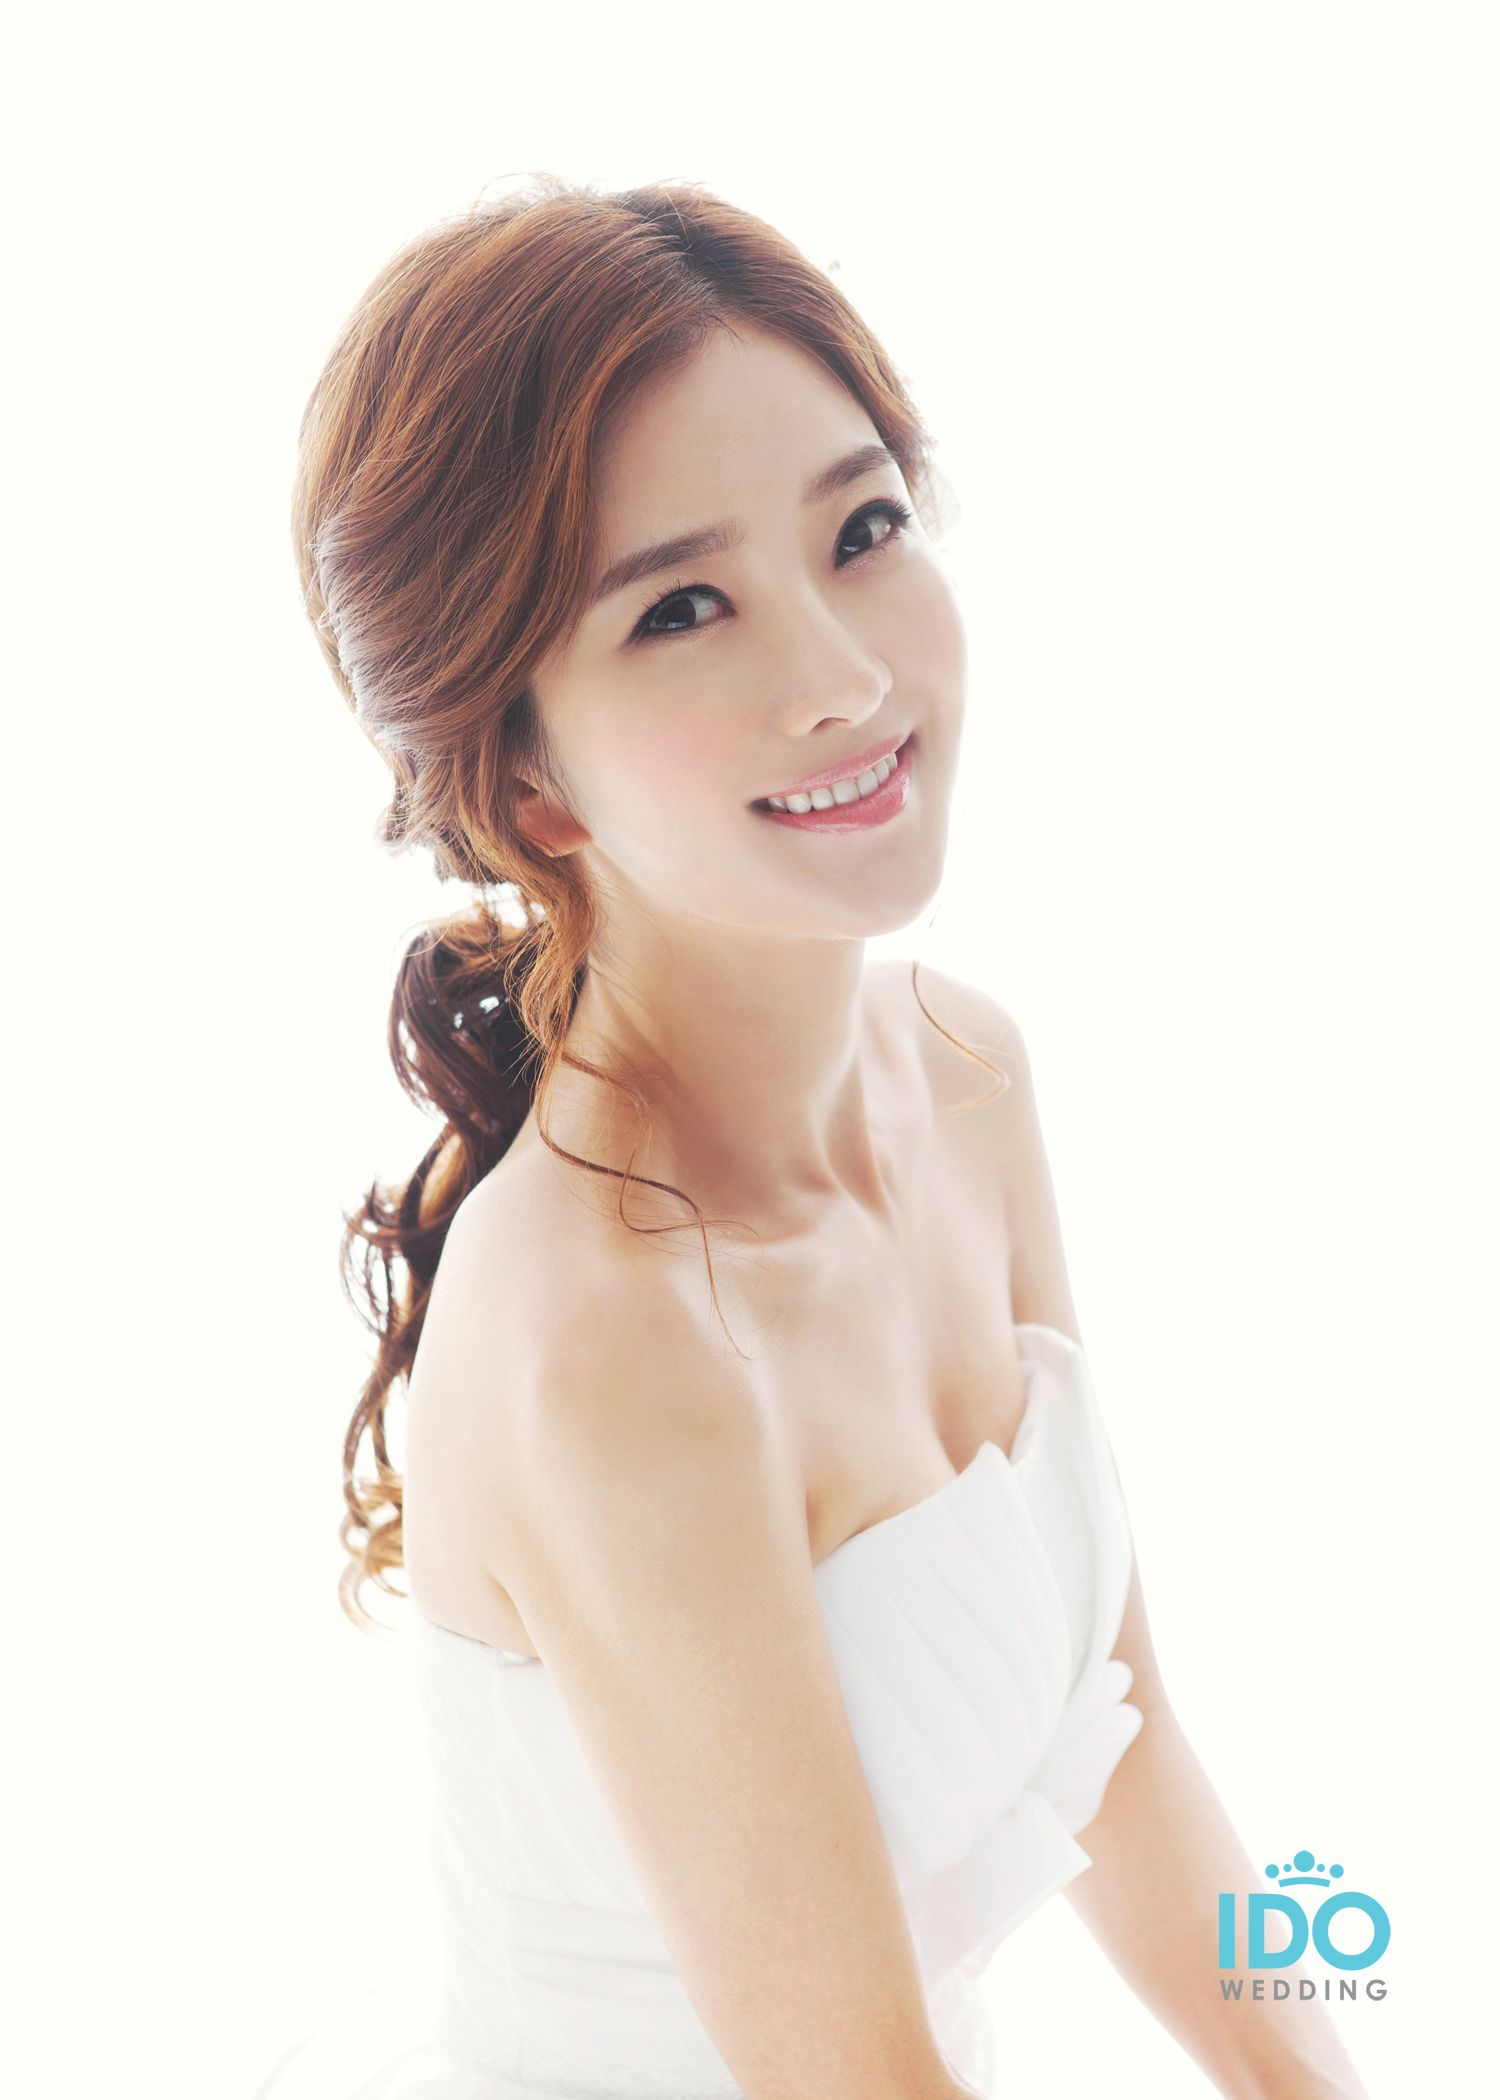 KOREAN WEDDING PHOTO – HAIR & MAKEUP STYLE